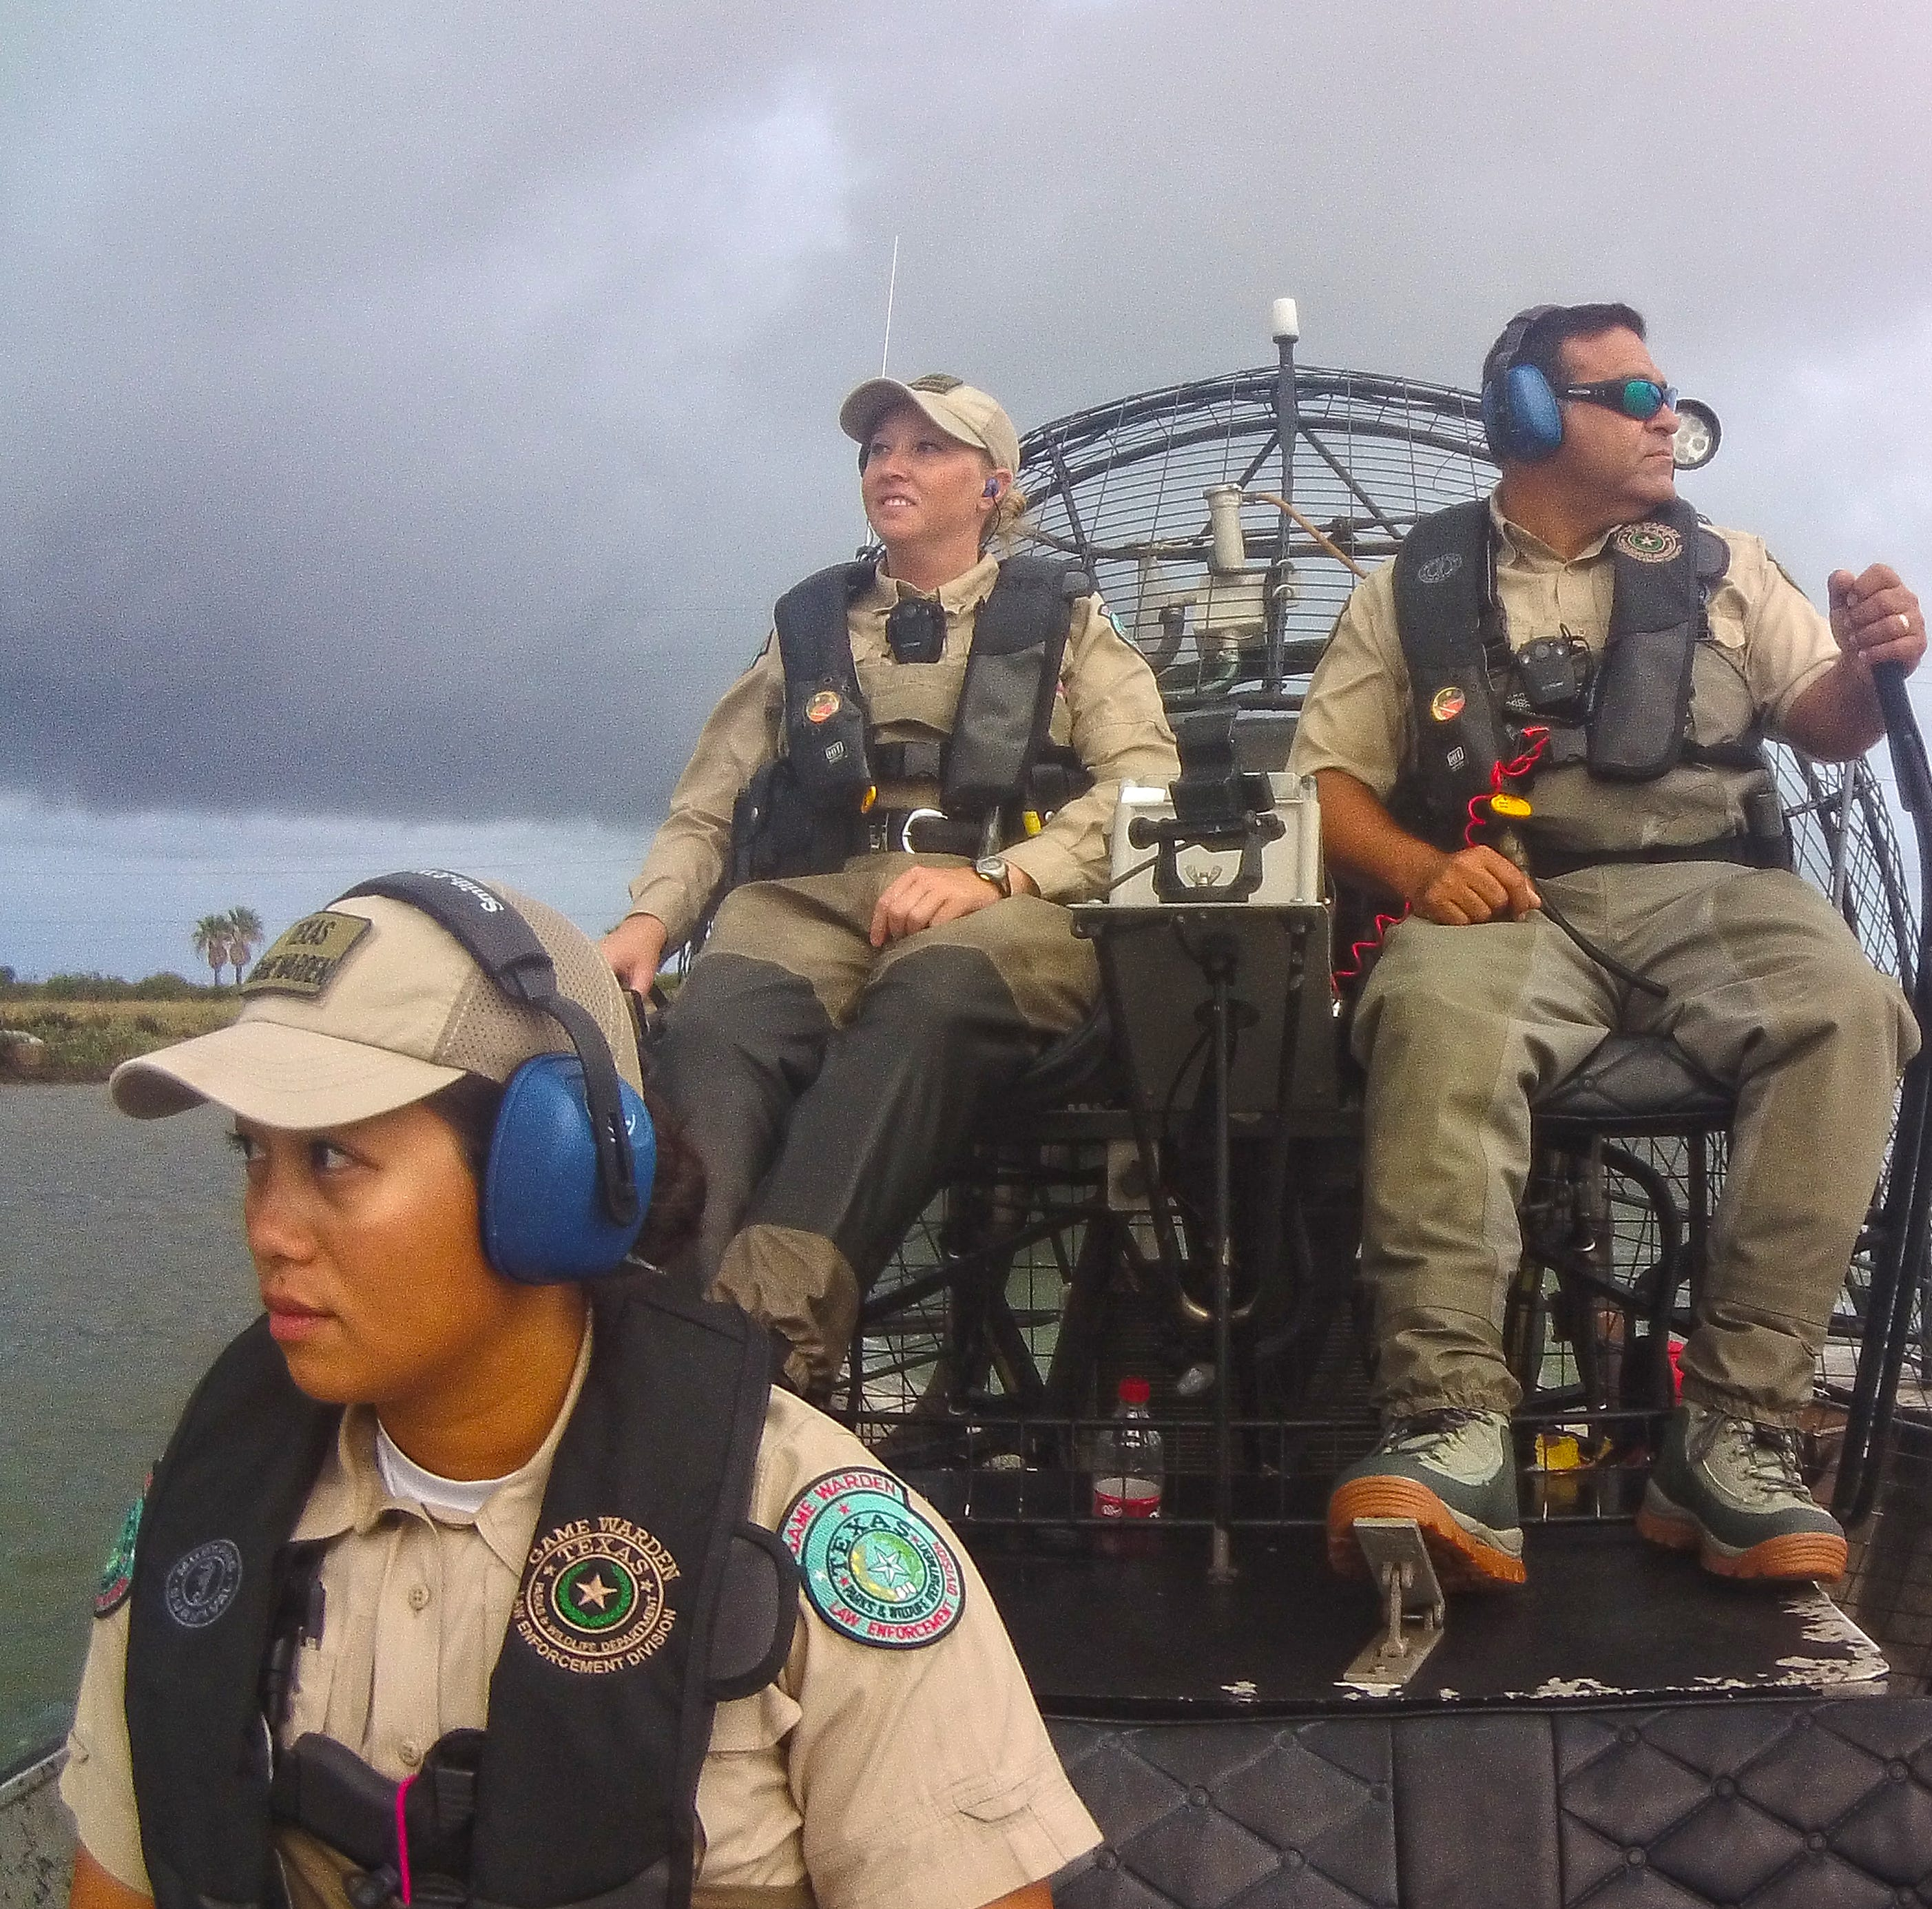 Tales from the Texas Outdoors through the eyes of game wardens